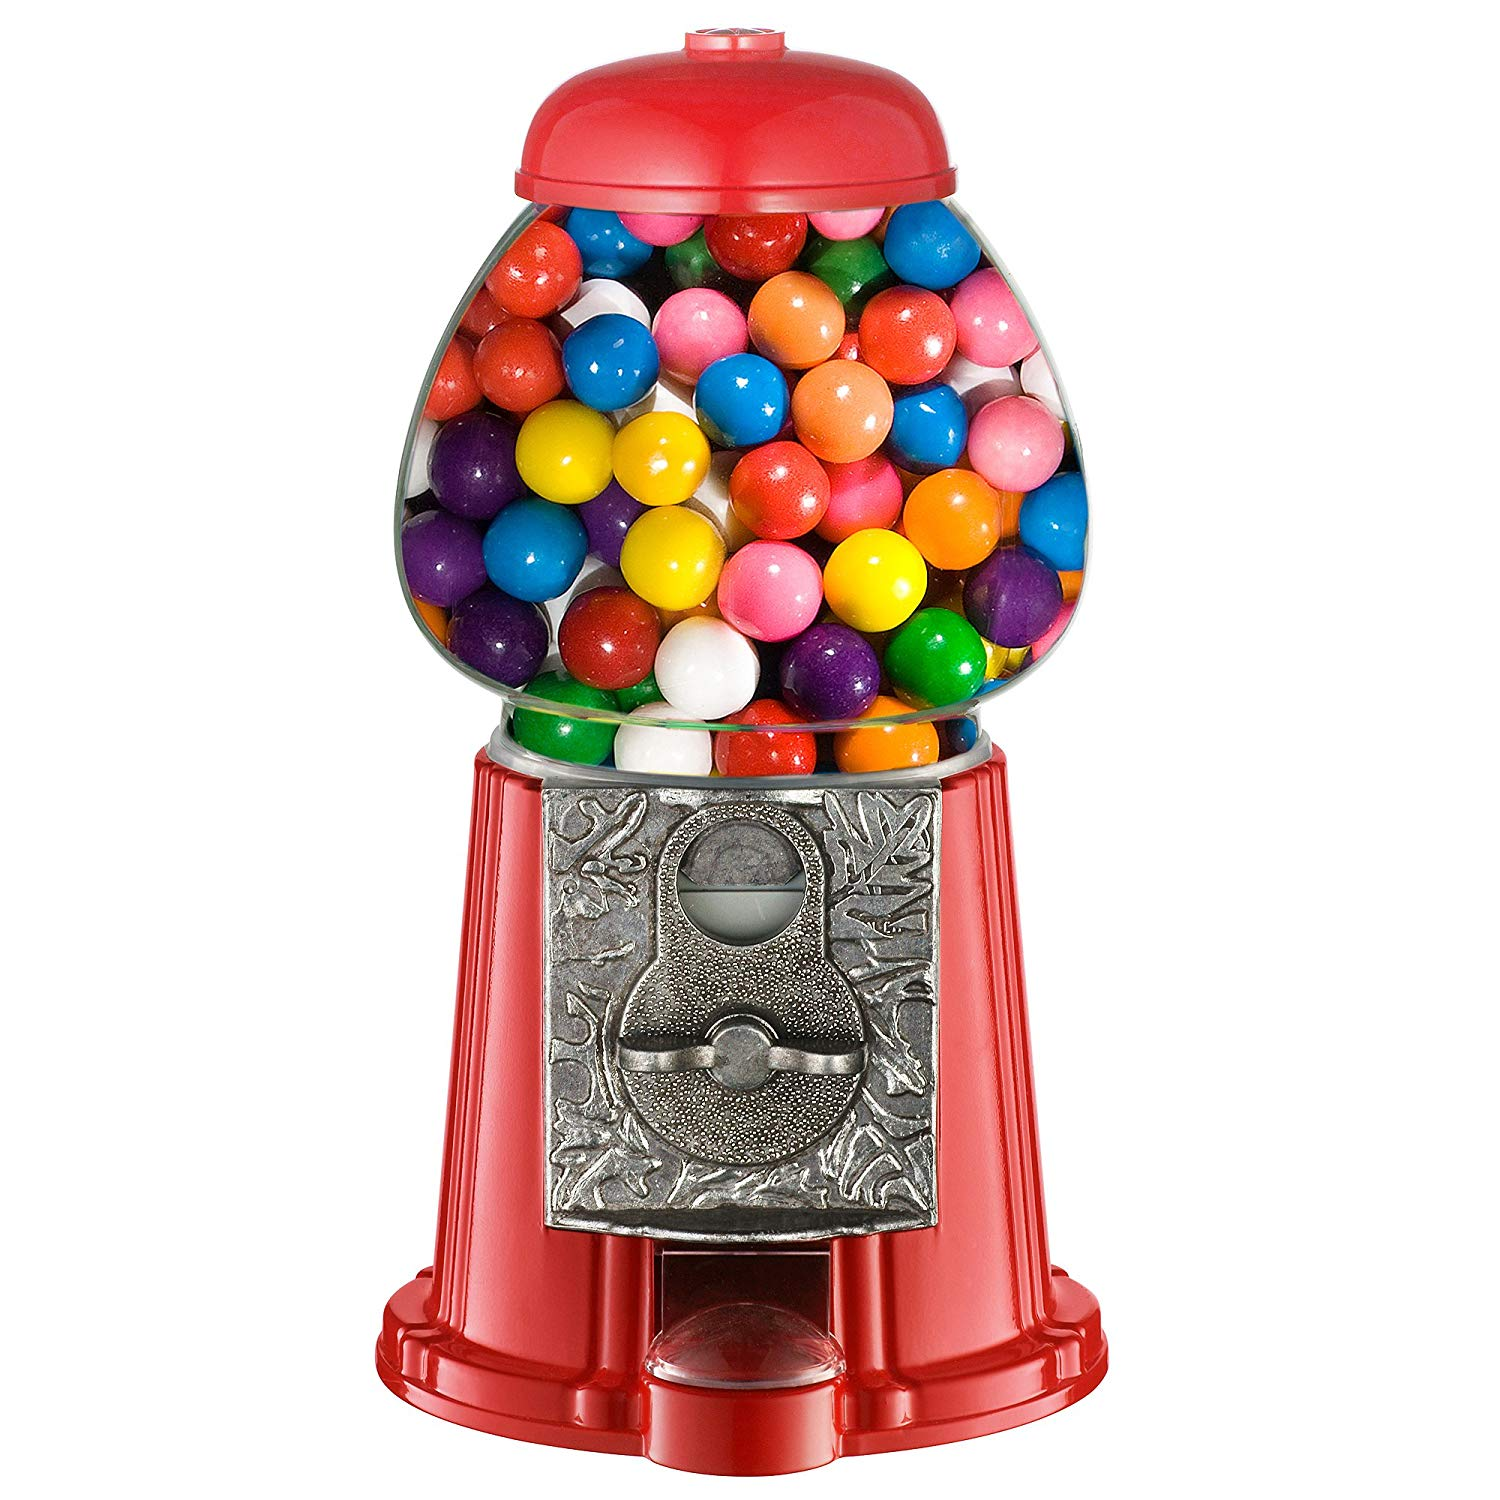 Gumball machine clipart bubble gum. Amazon com great northern